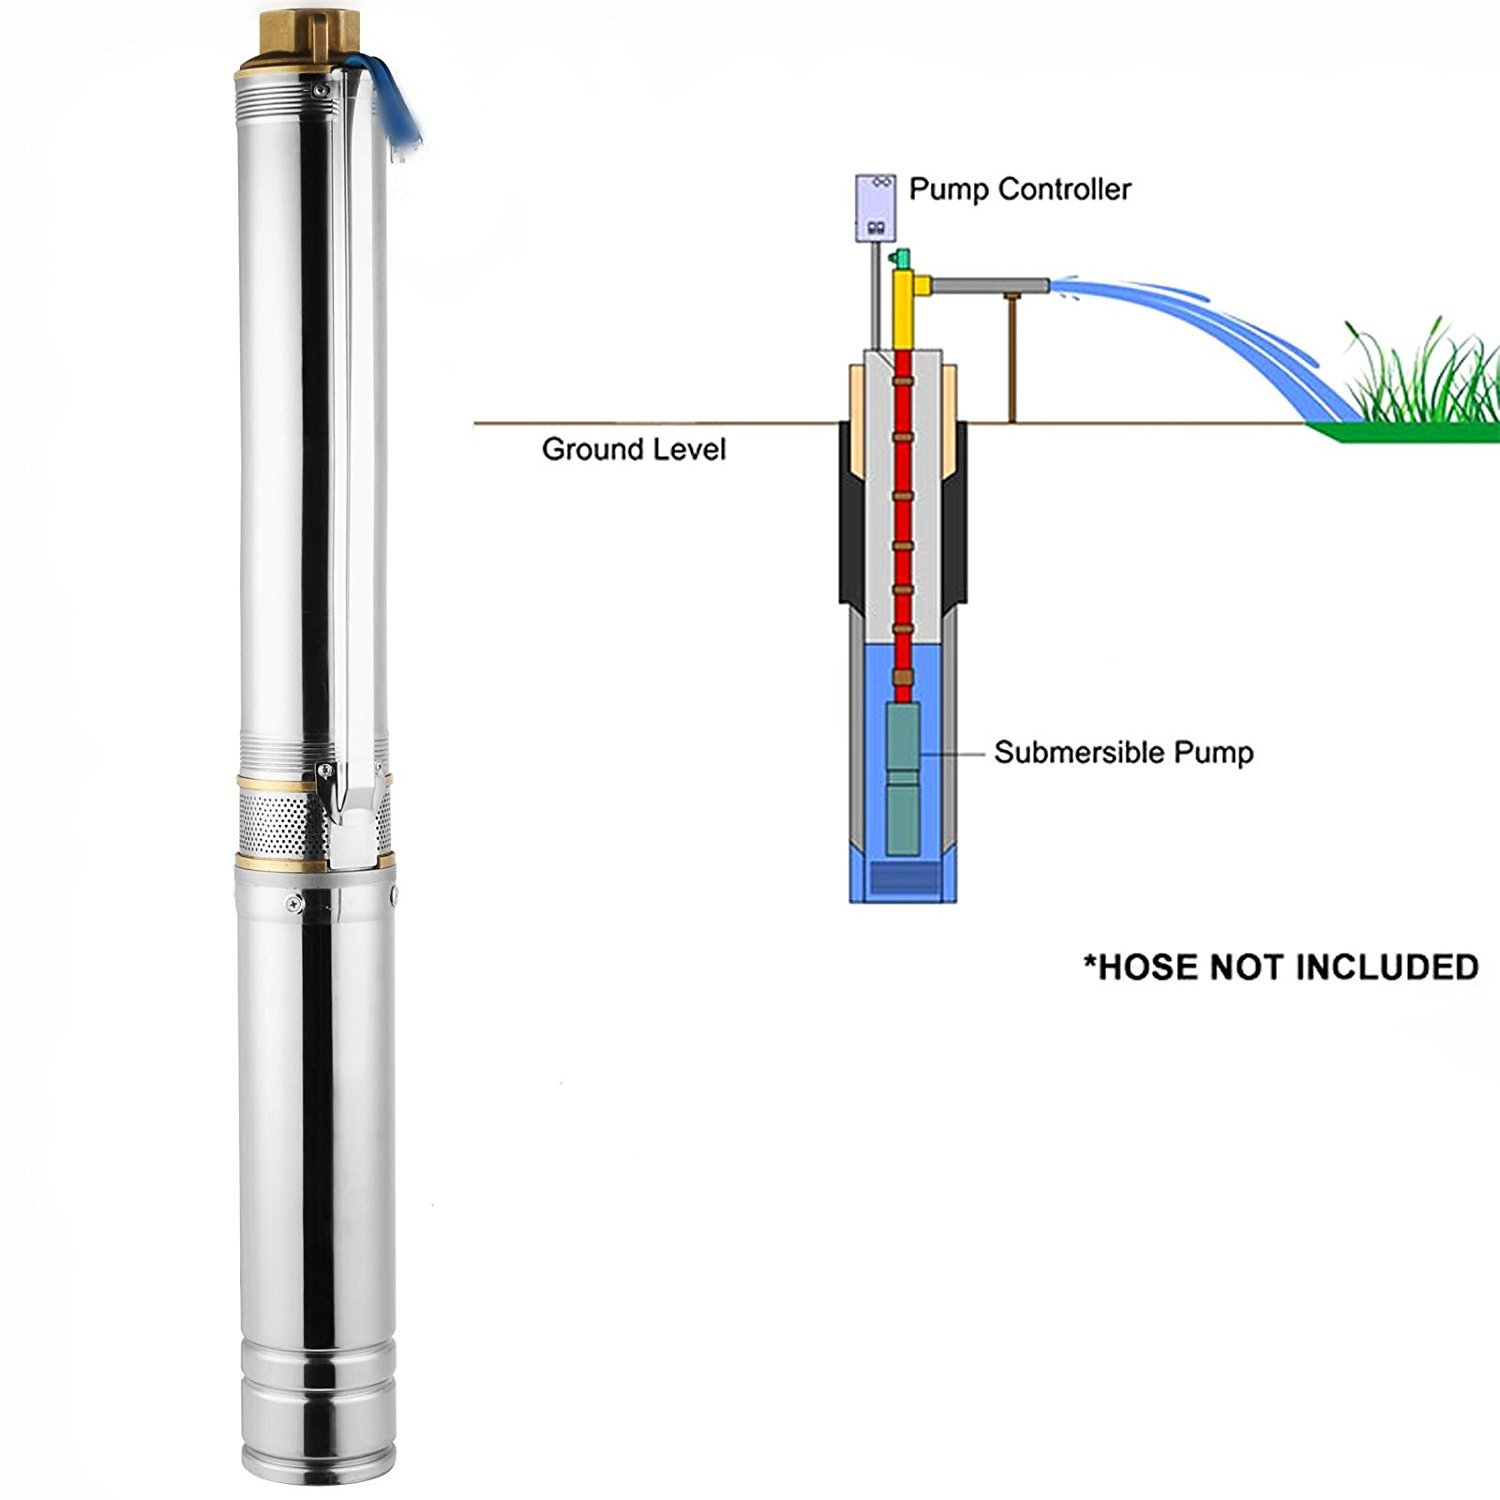 Mophorn Submersible Pump 110V 0.5HP 4 Inch Deep Well Pump 125FT 25GPM Stainless Steel Deep Well Submersible Pump for Extraction of Groundwater (110V 0.5HP)